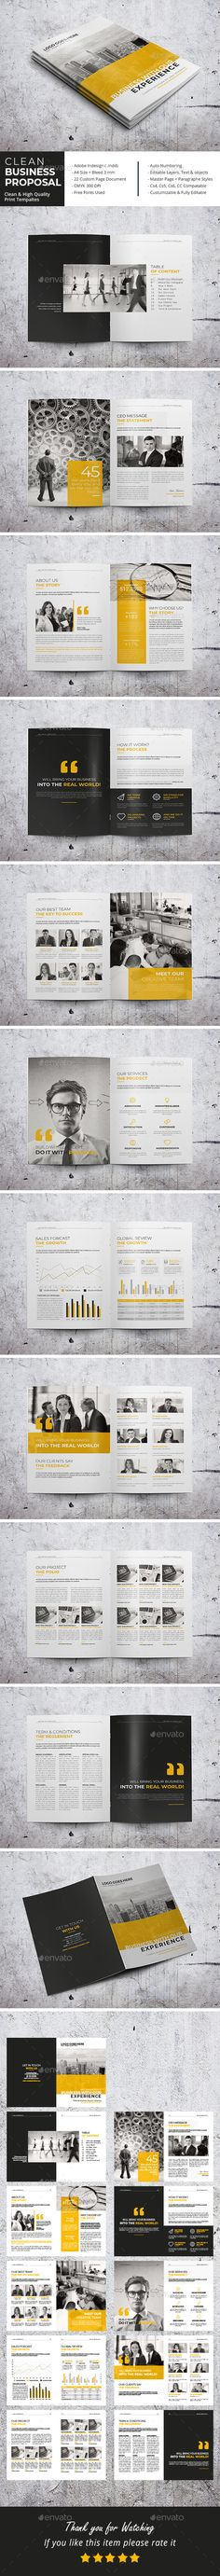 Clean Business Proposal